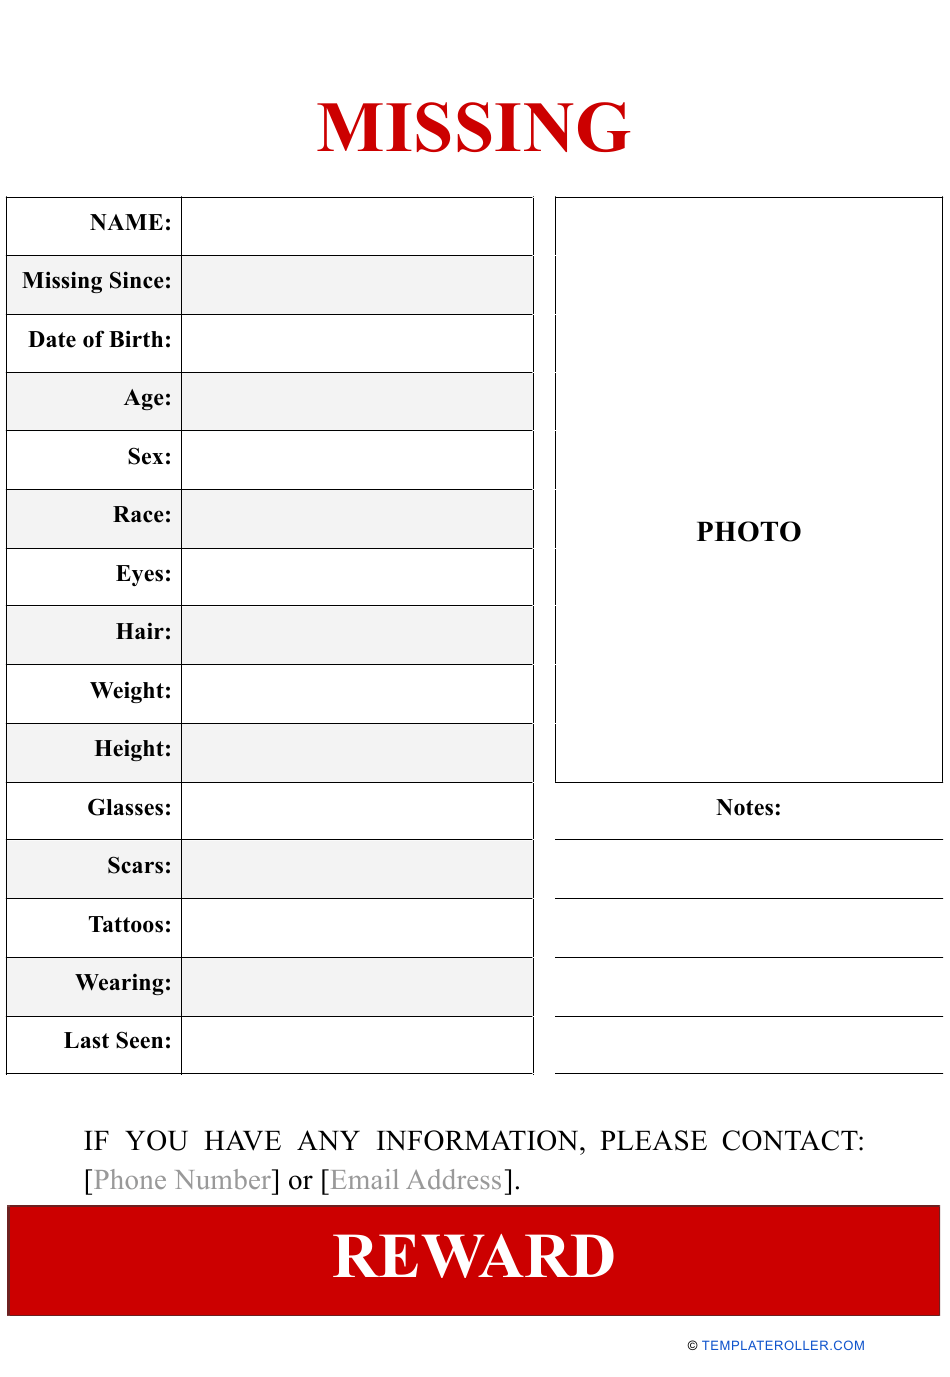 """Missing Person Poster Template With Reward"" Download Pdf"